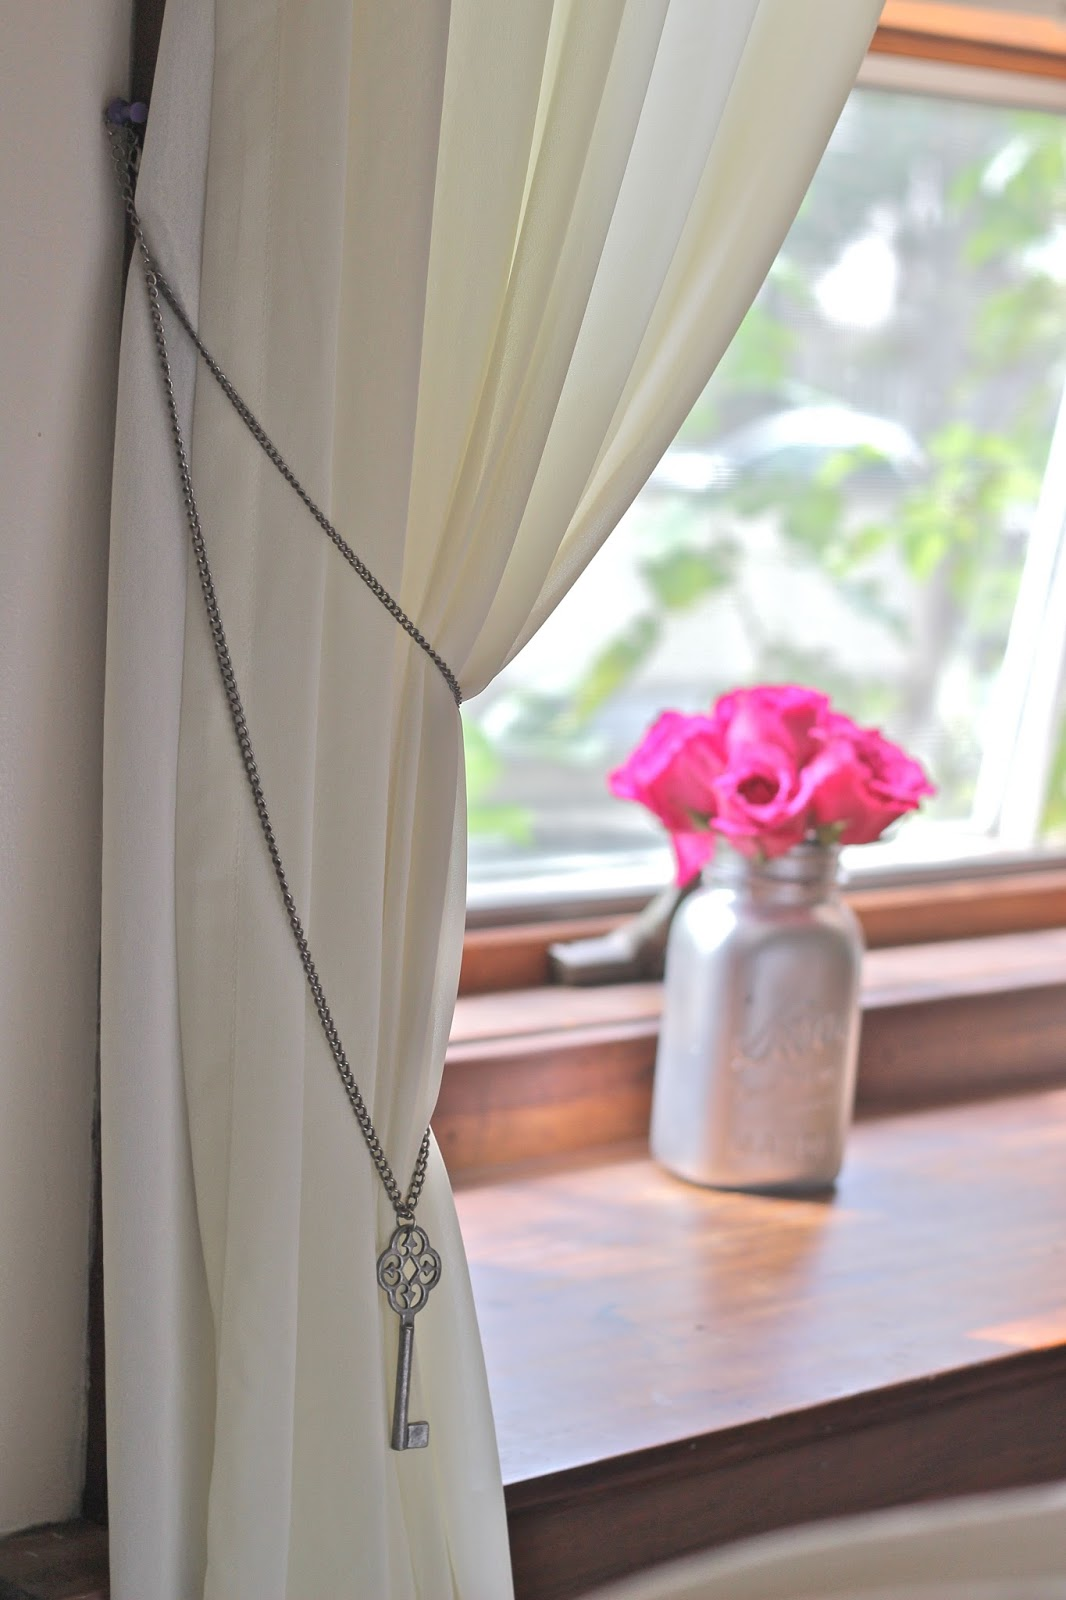 DIY Necklace Curtain Holders